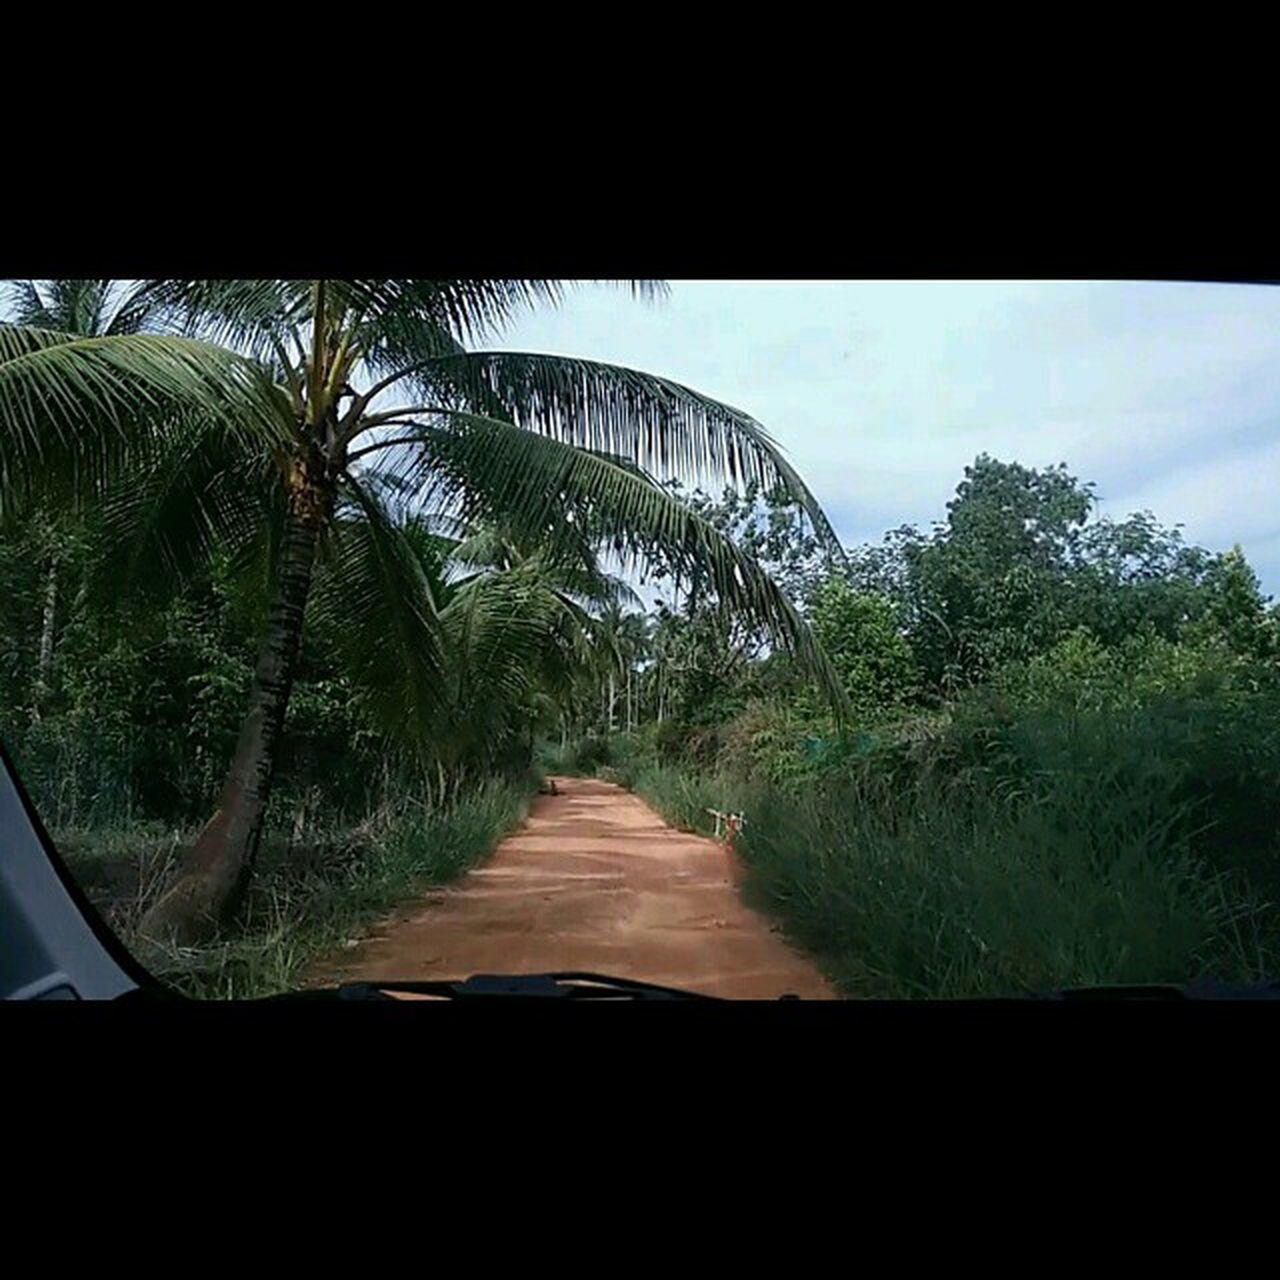 This is how most of the roads were here; Red Earth , full of Potholes (some more than a foot deep!) and wild chickens and dogs walking around. During the day it's kind of fun, but at night the cab ride becomes an adventure! Christmas Vacation Holiday Latergram Rustic Oldschool Backtobasics Greenliving Bintan  INDONESIA Loola Adventure Resort Sunny